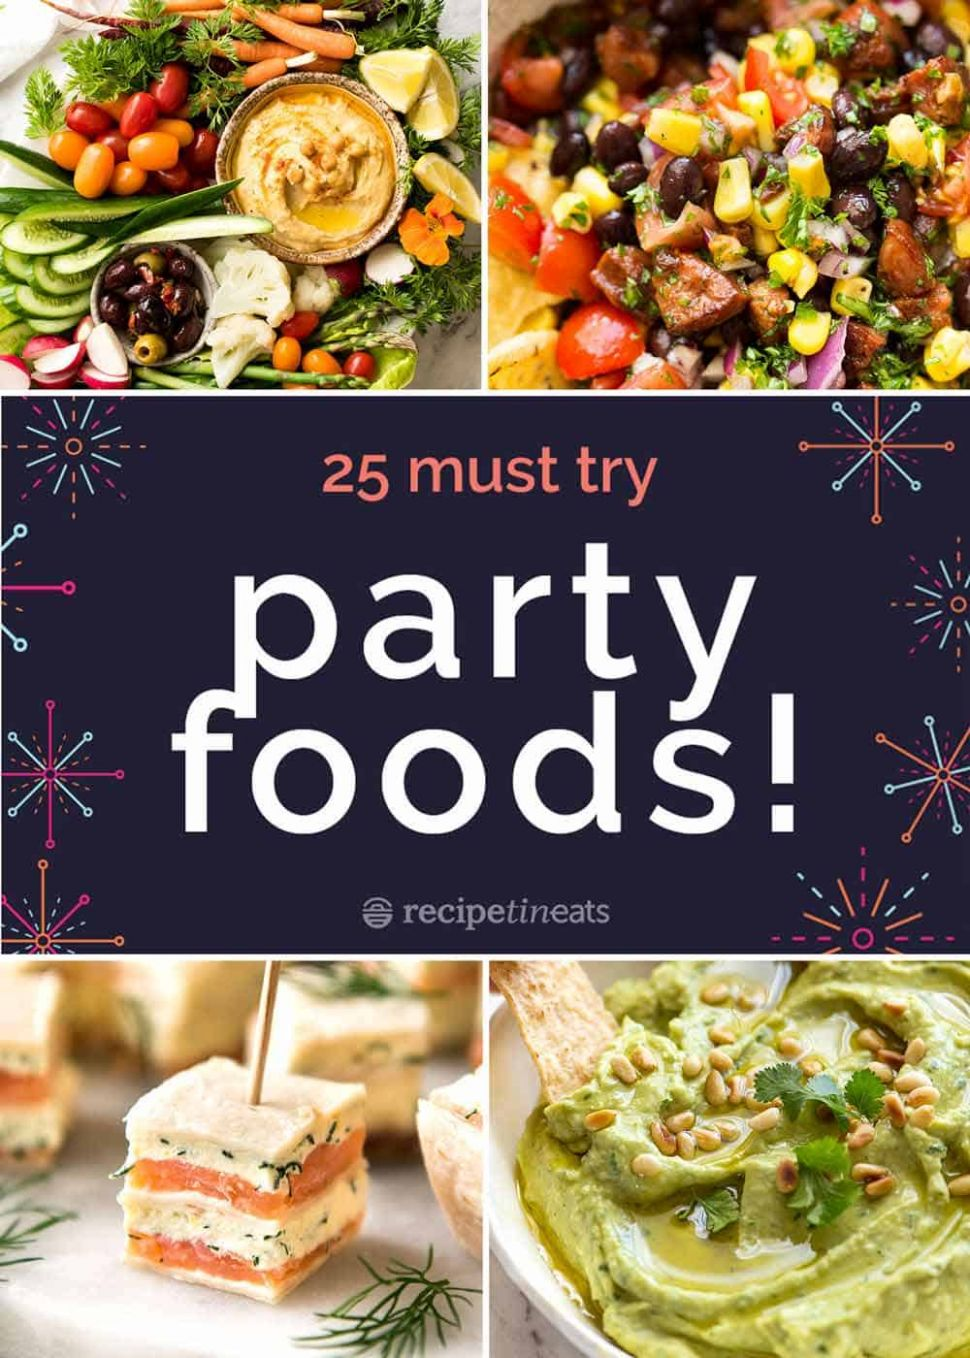 10 BEST Party Food Recipes! - Food Recipes Ideas